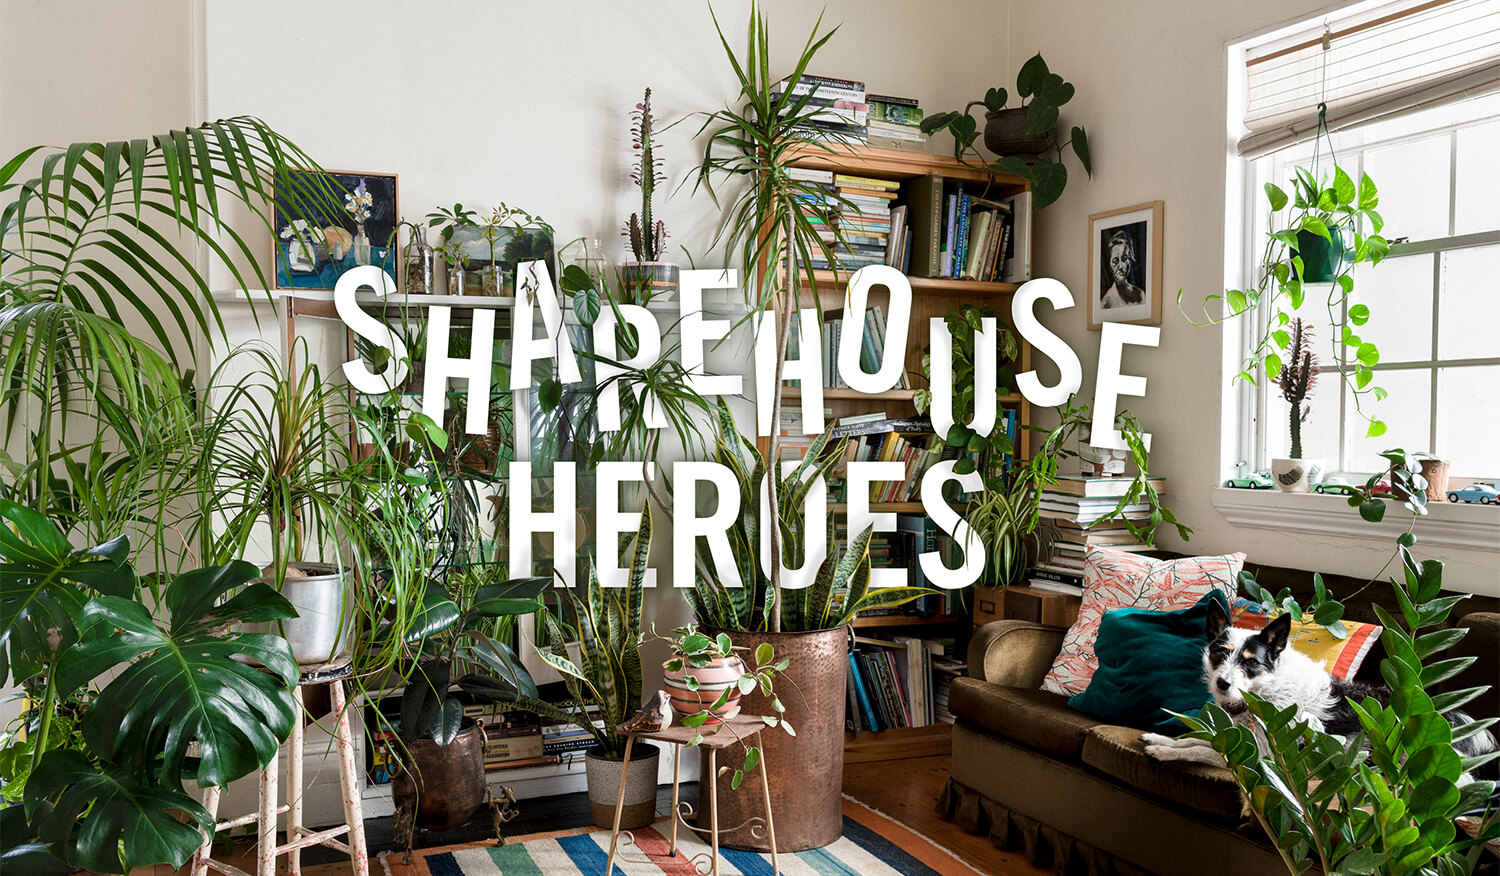 Sharehouse Heroes